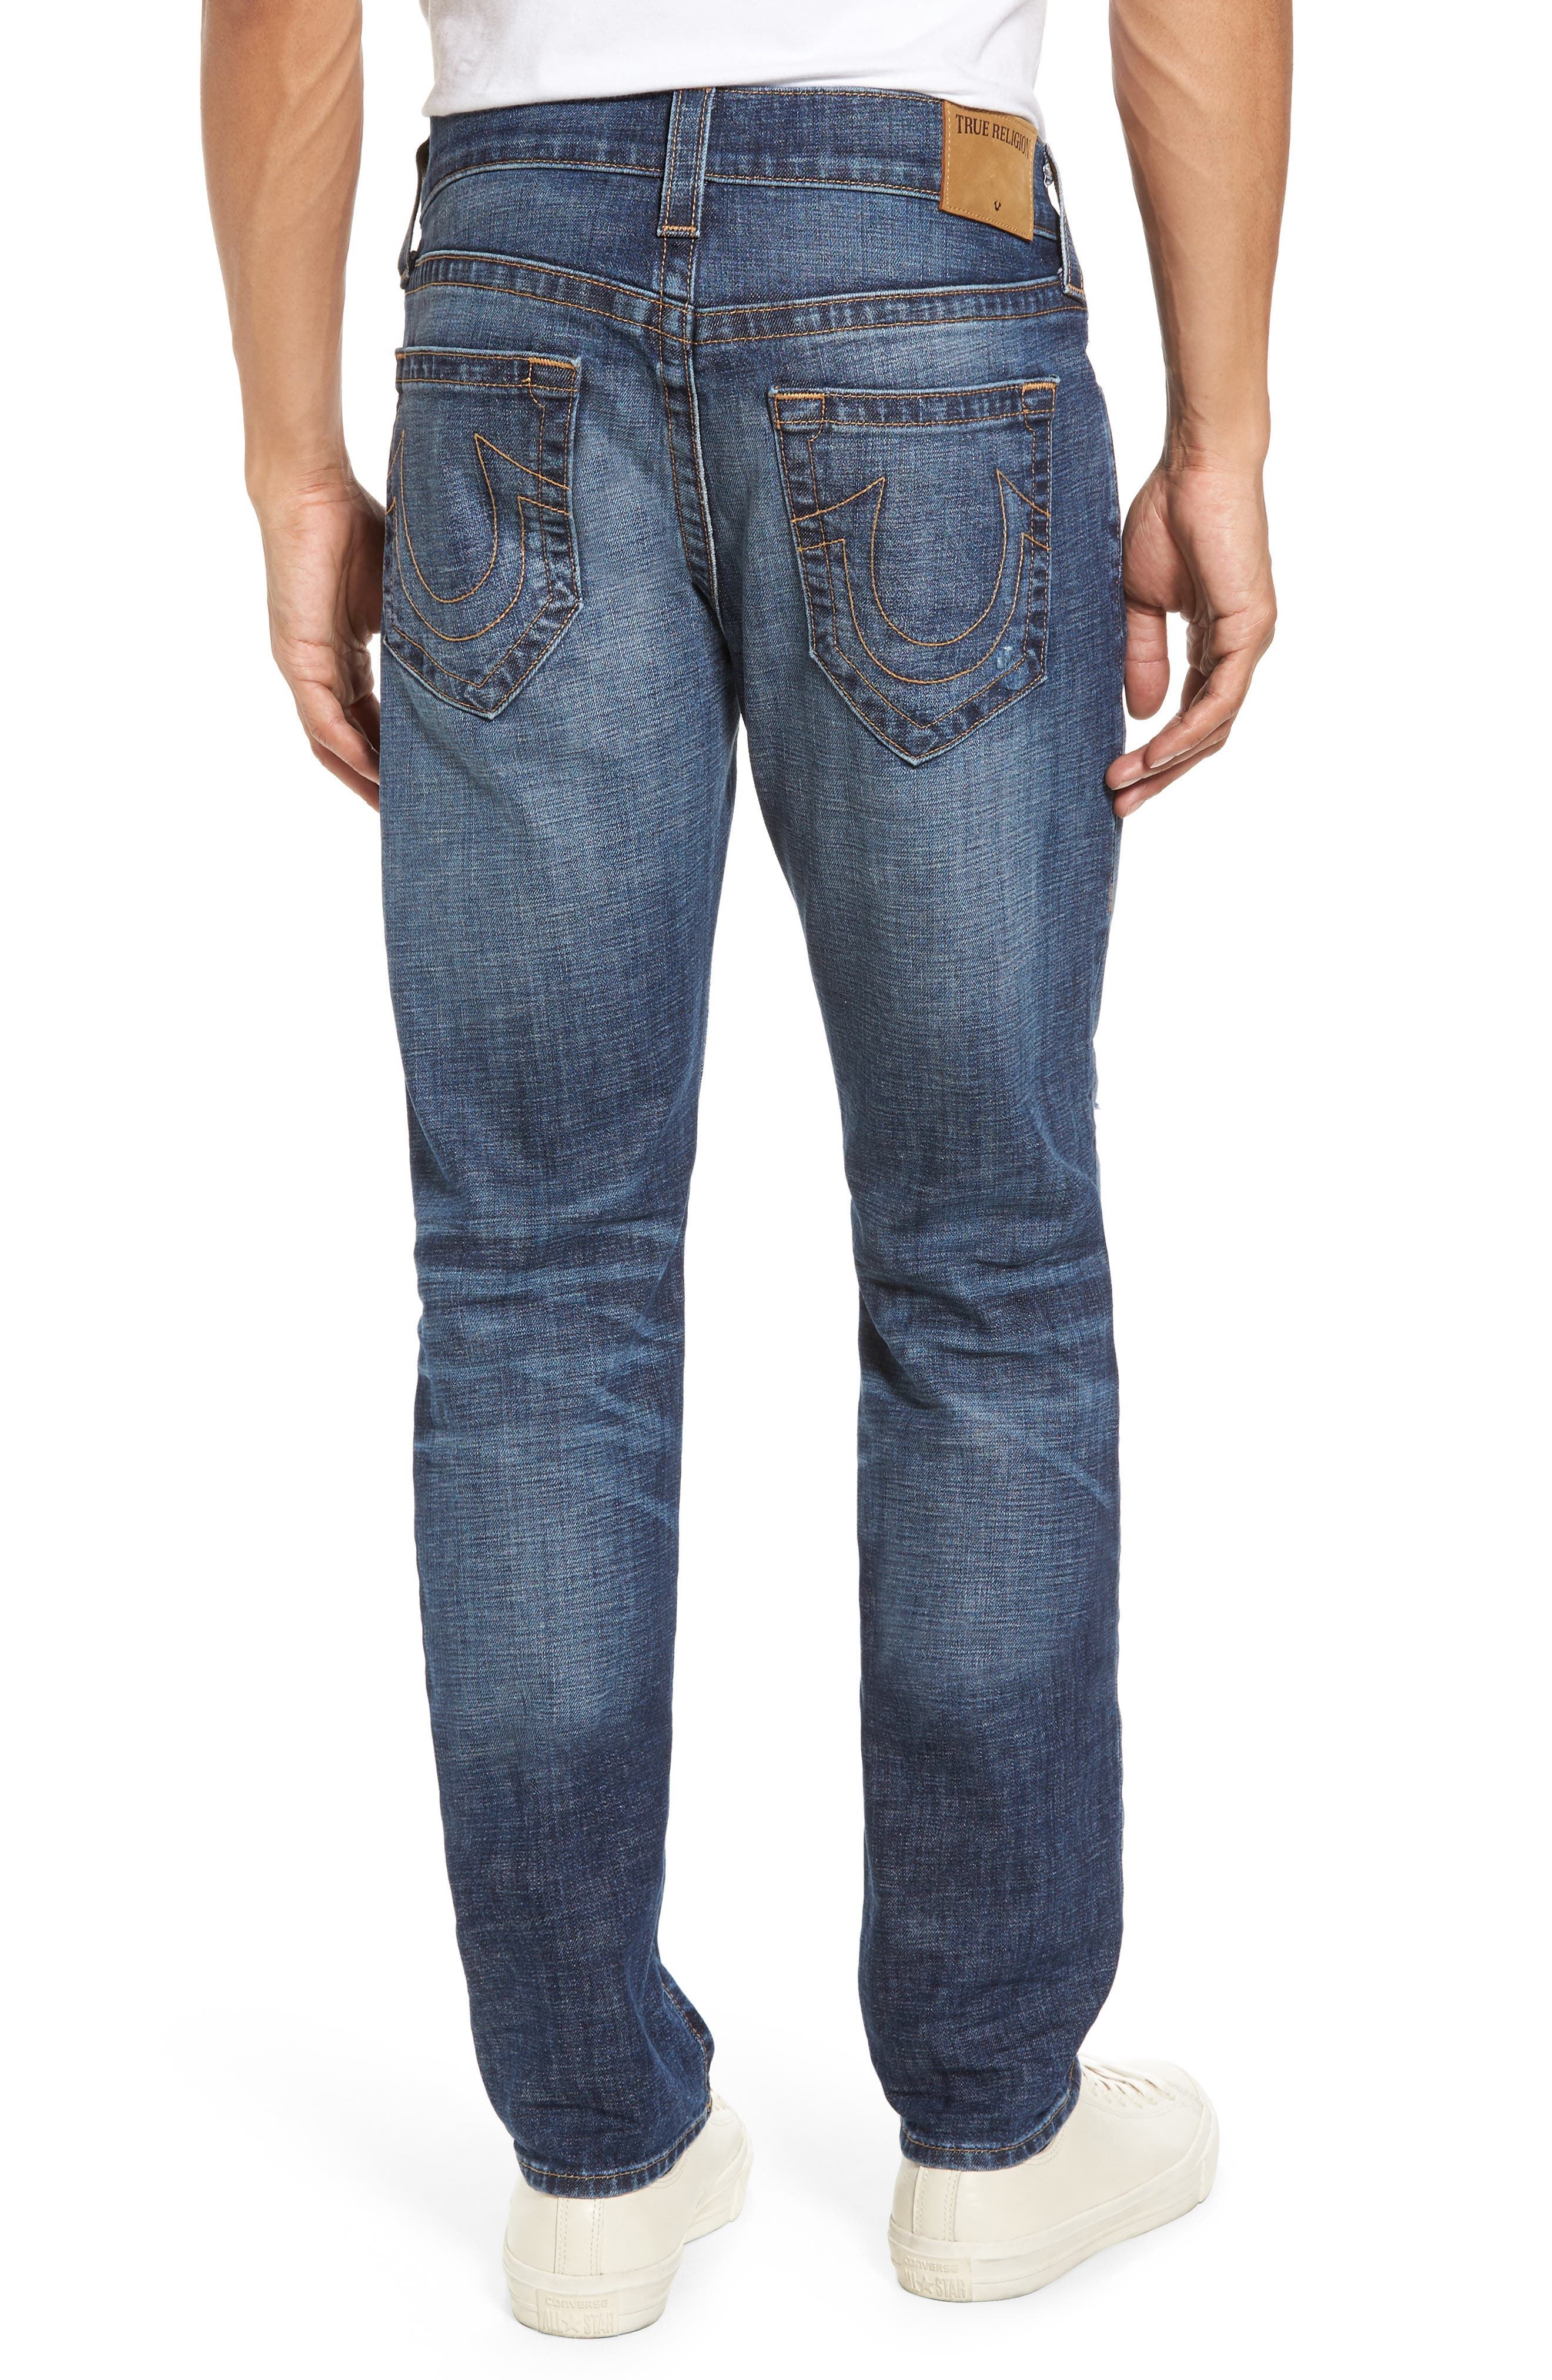 Rocco Skinny Fit Jeans,                             Alternate thumbnail 2, color,                             Dark Wash